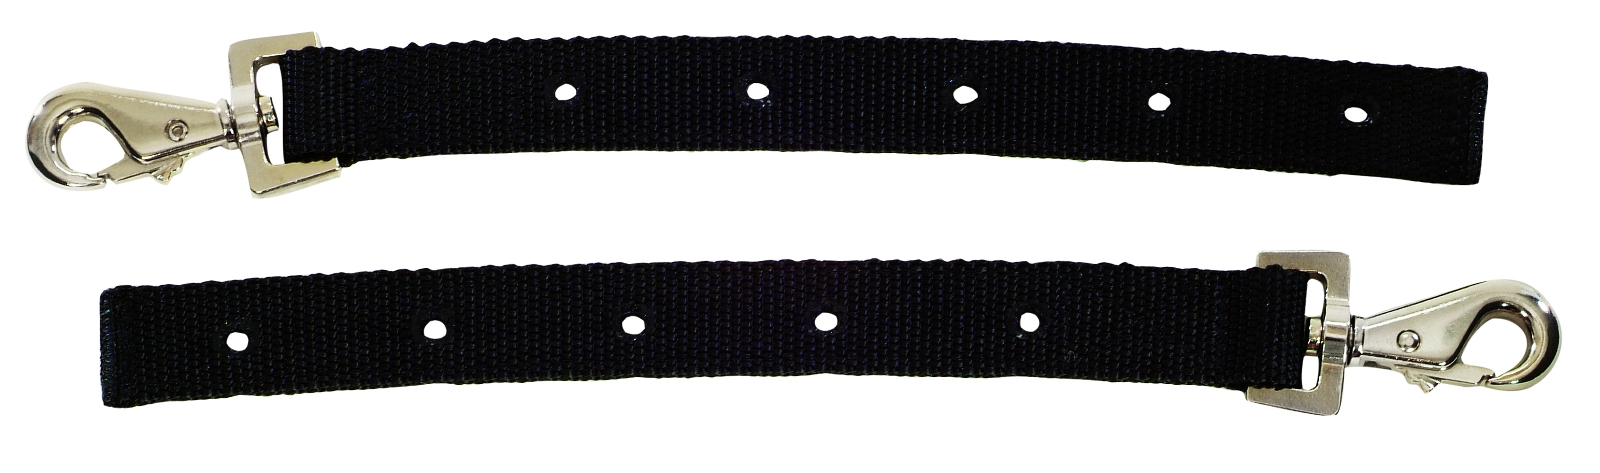 Weatherbeeta Replacement Quick Clip Chest Strap- Each